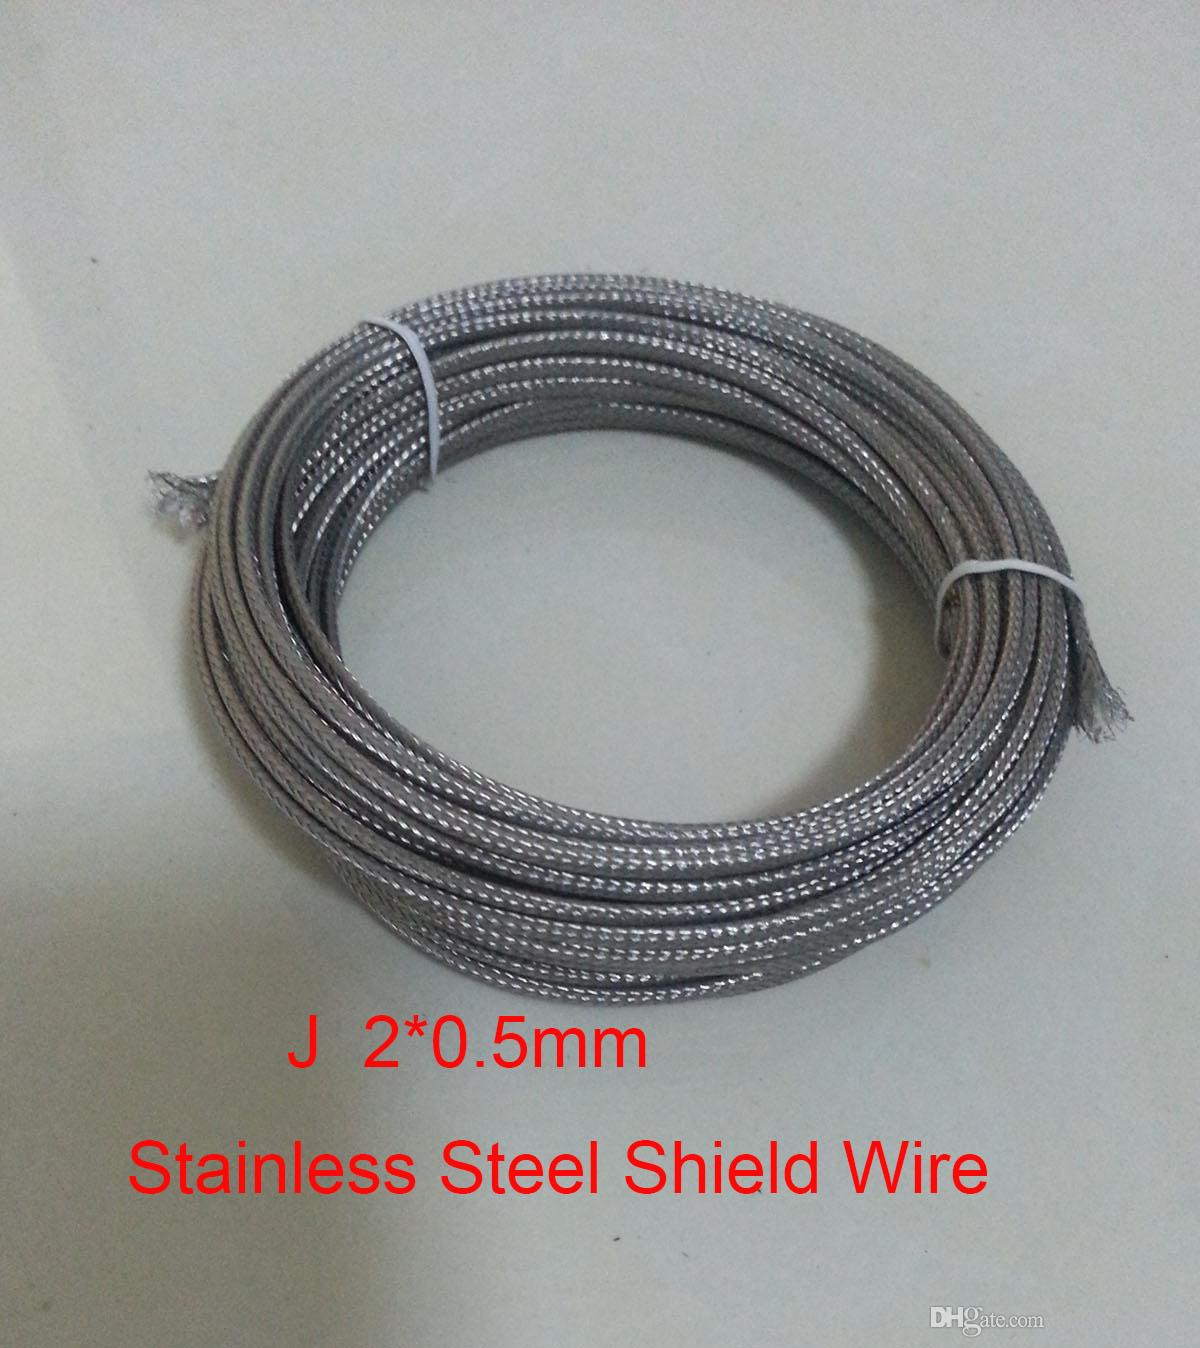 2*0.5mm J TypeFiberglass Coated Stainless Steel Shield Thermocouple ...